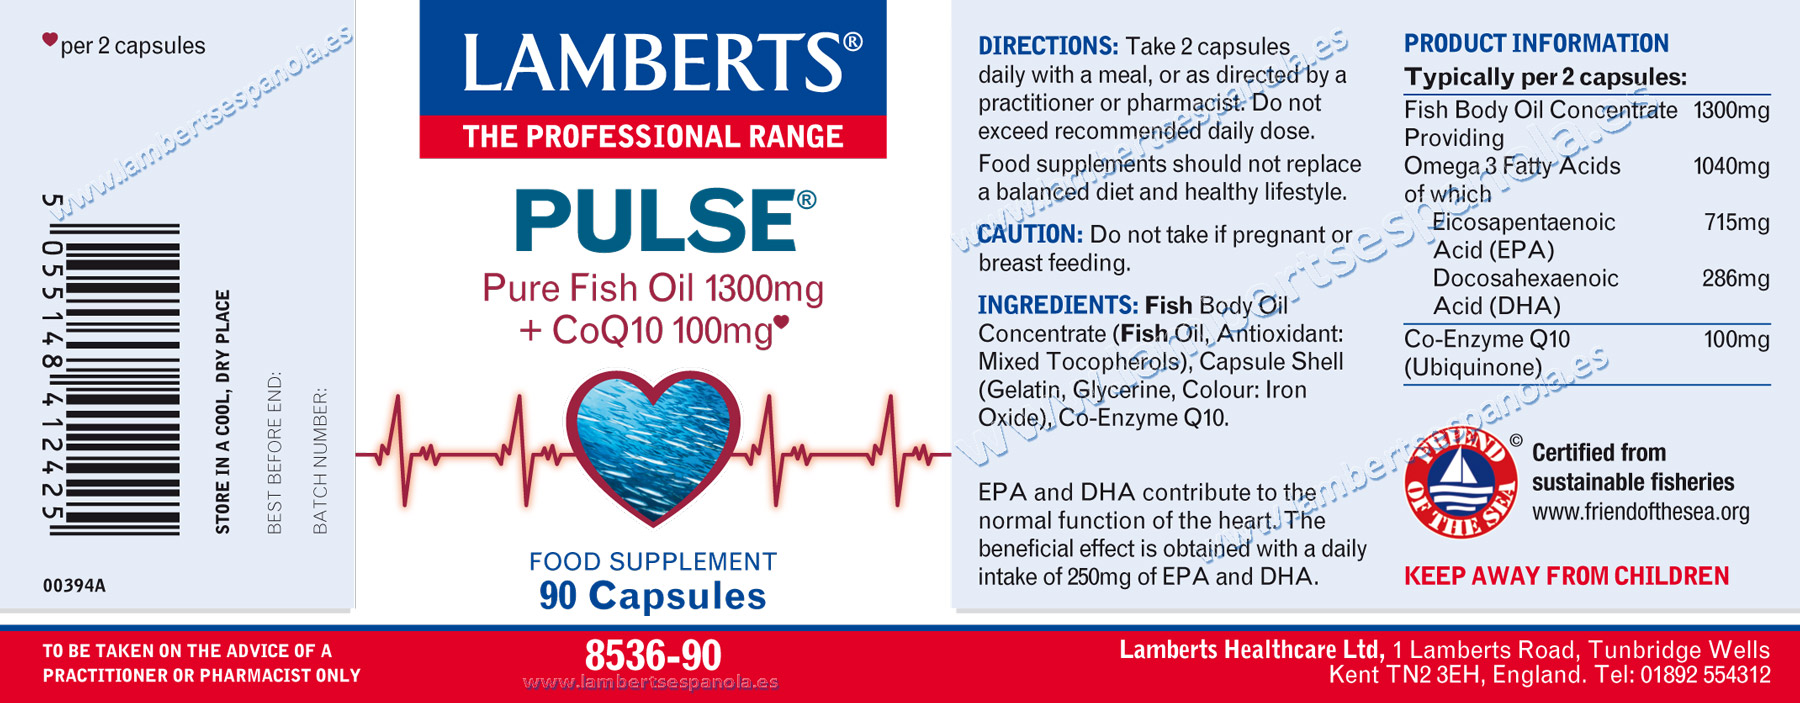 Label of Pulse from Lamberts with its properties and indications